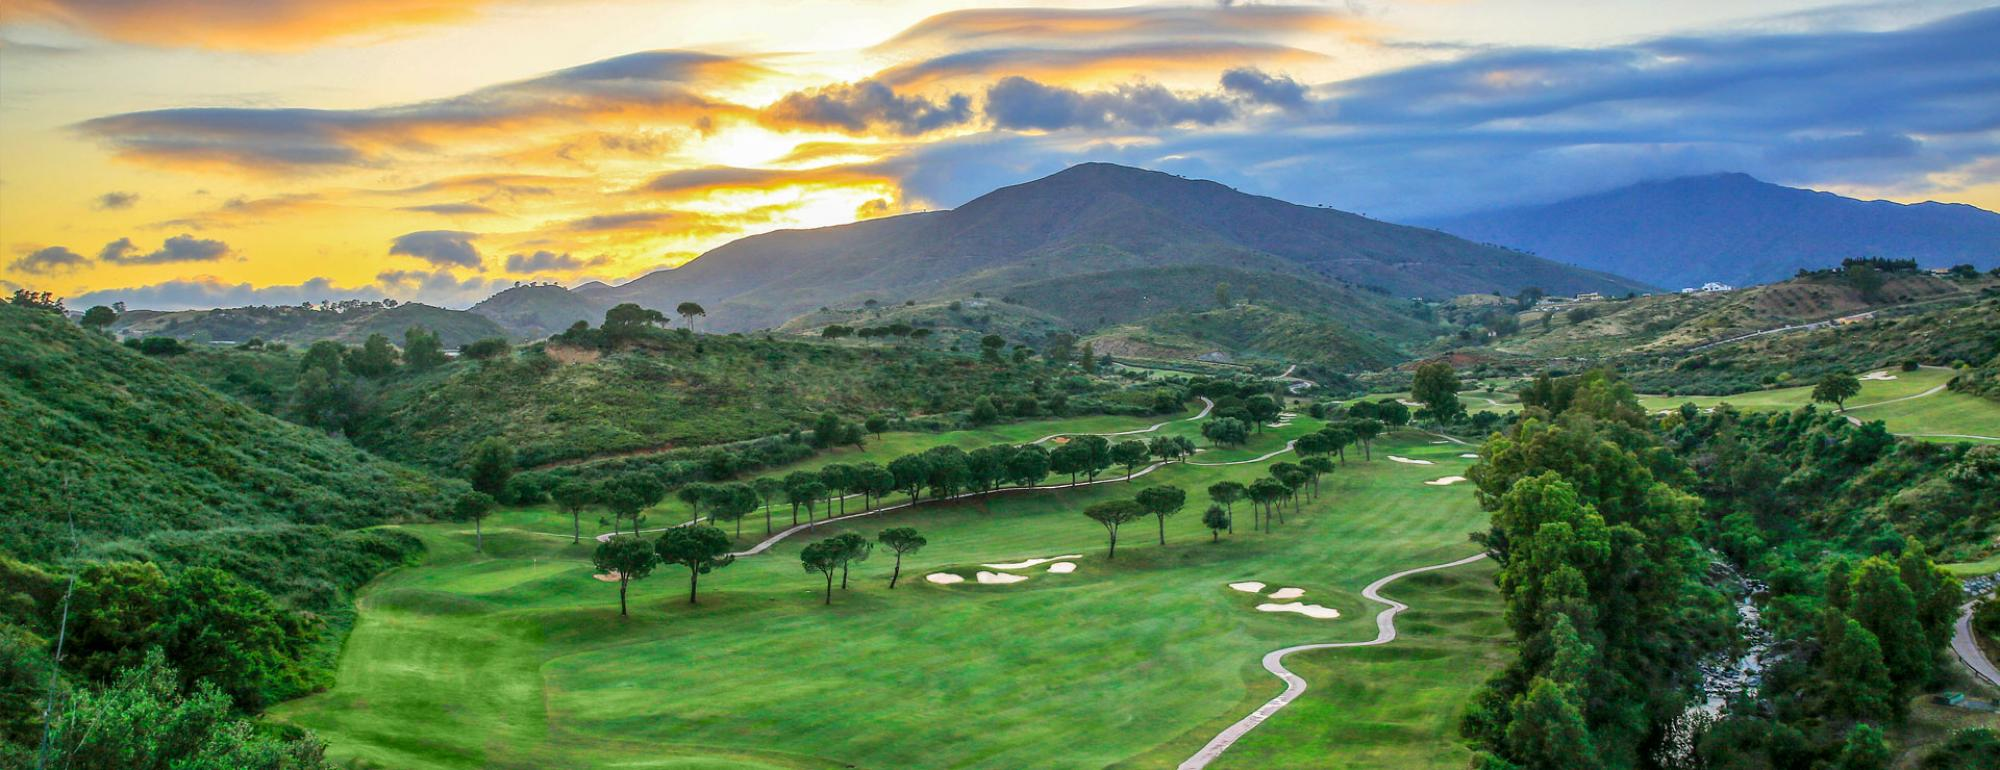 La Cala America Golf Course is among the leading golf courses on the Costa Del Sol